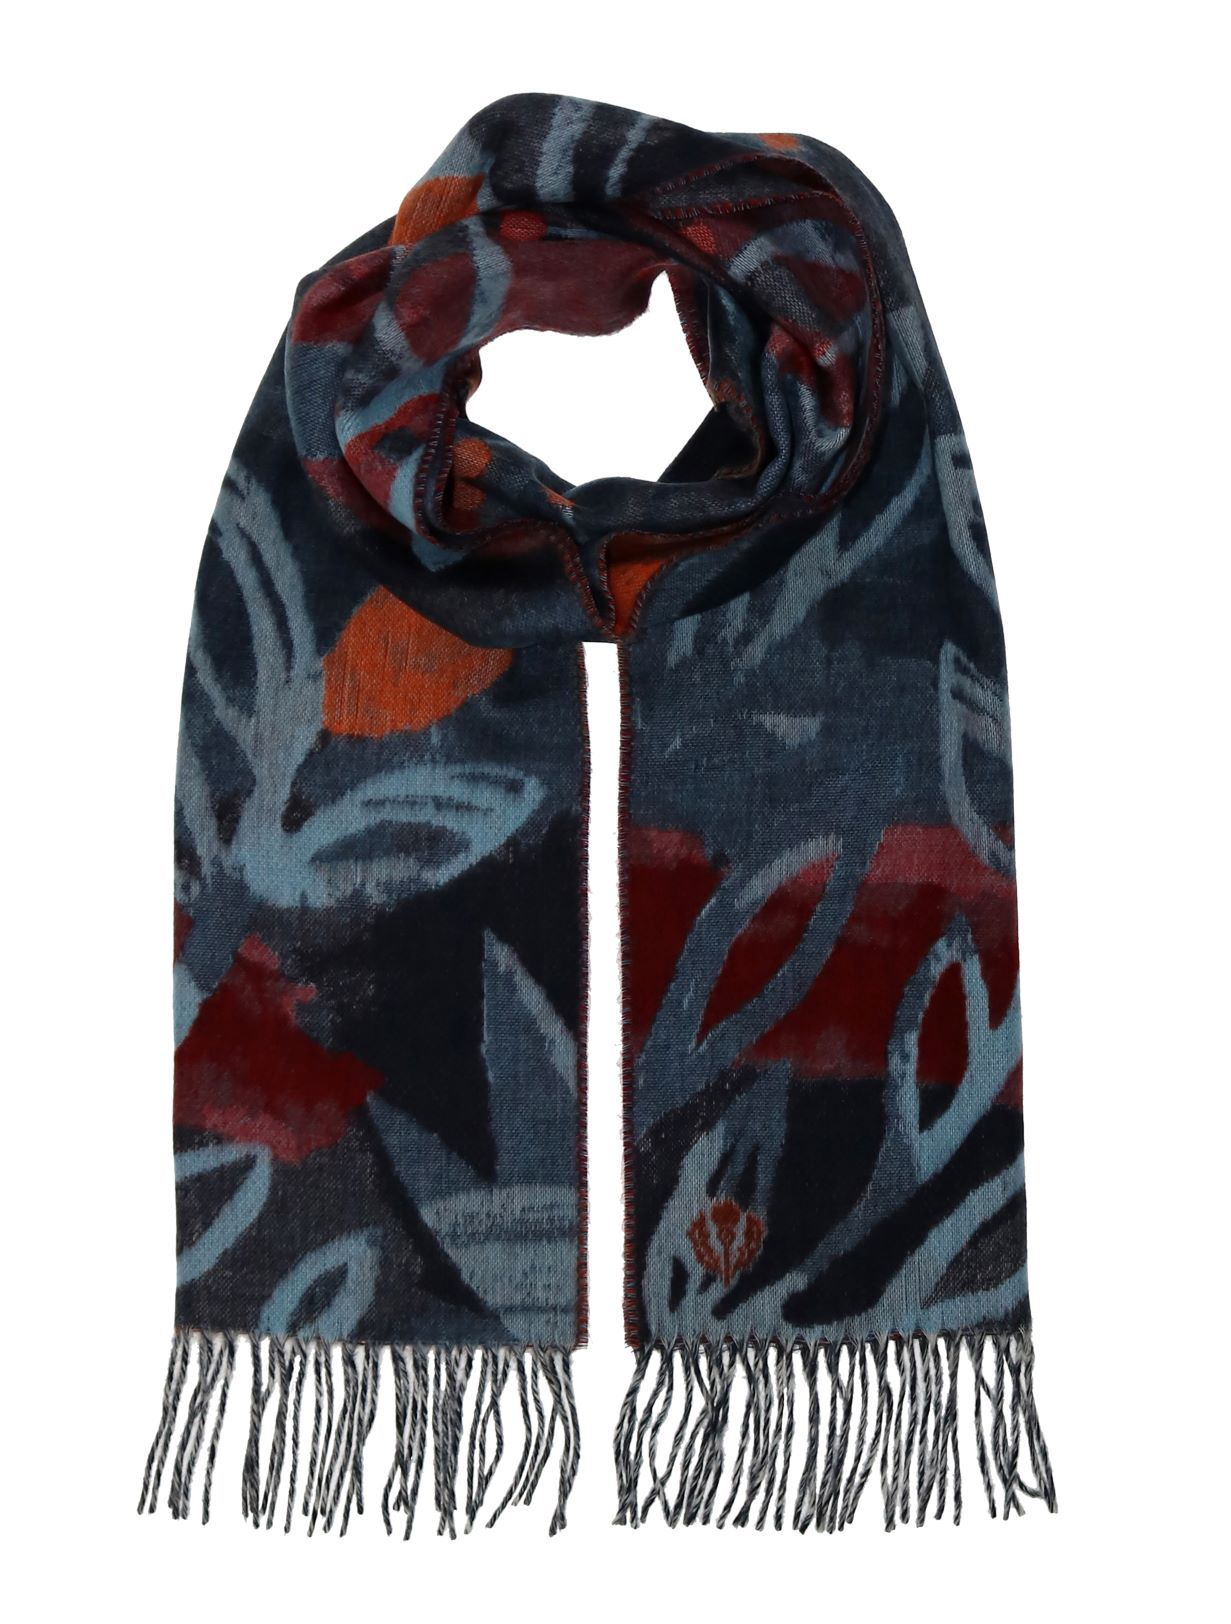 Branches & Berries Oversized Cashmink Scarf